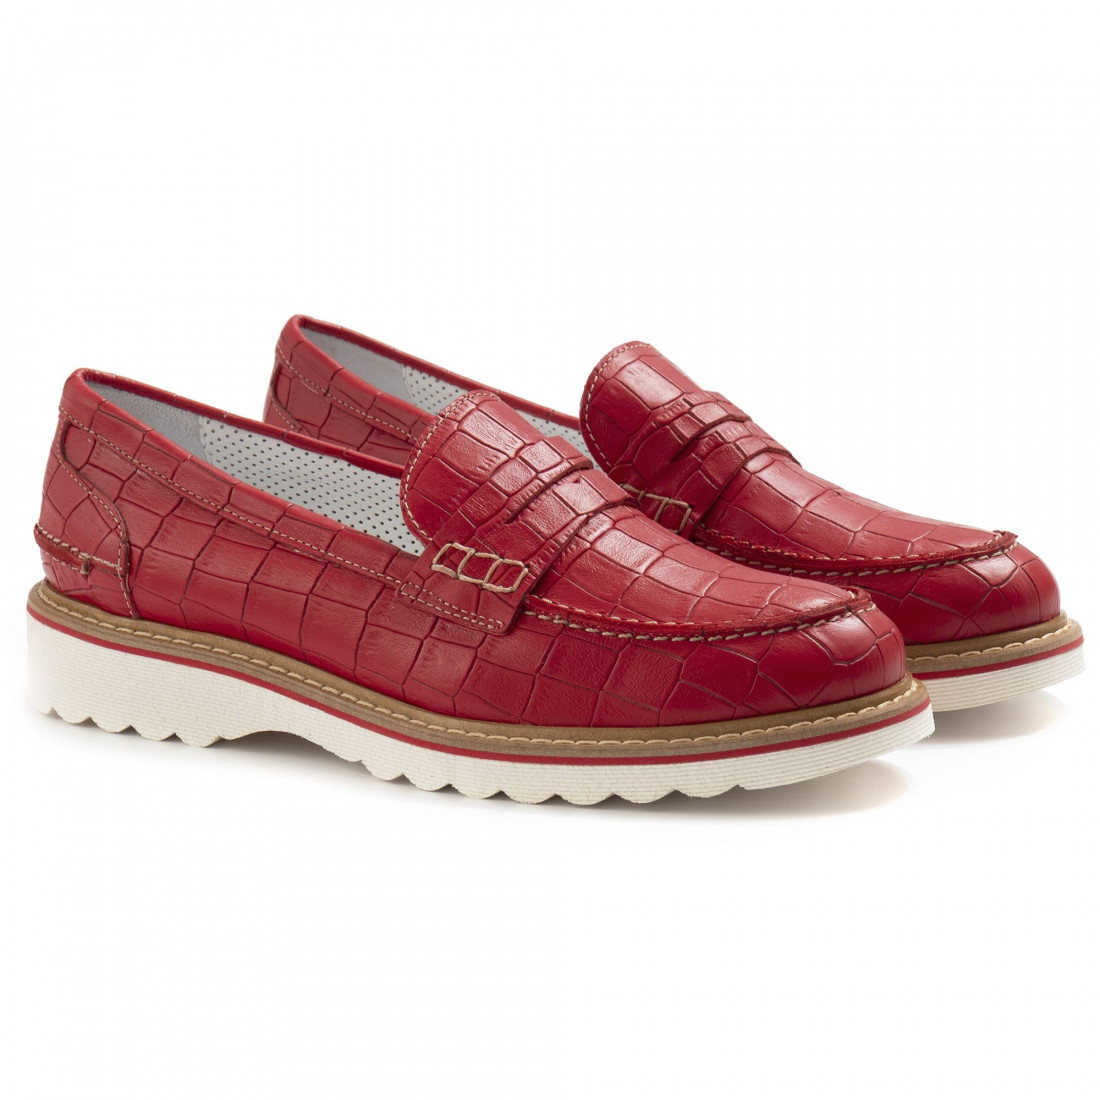 loafers woman alfredo giantin 6636cocco rosso 7123